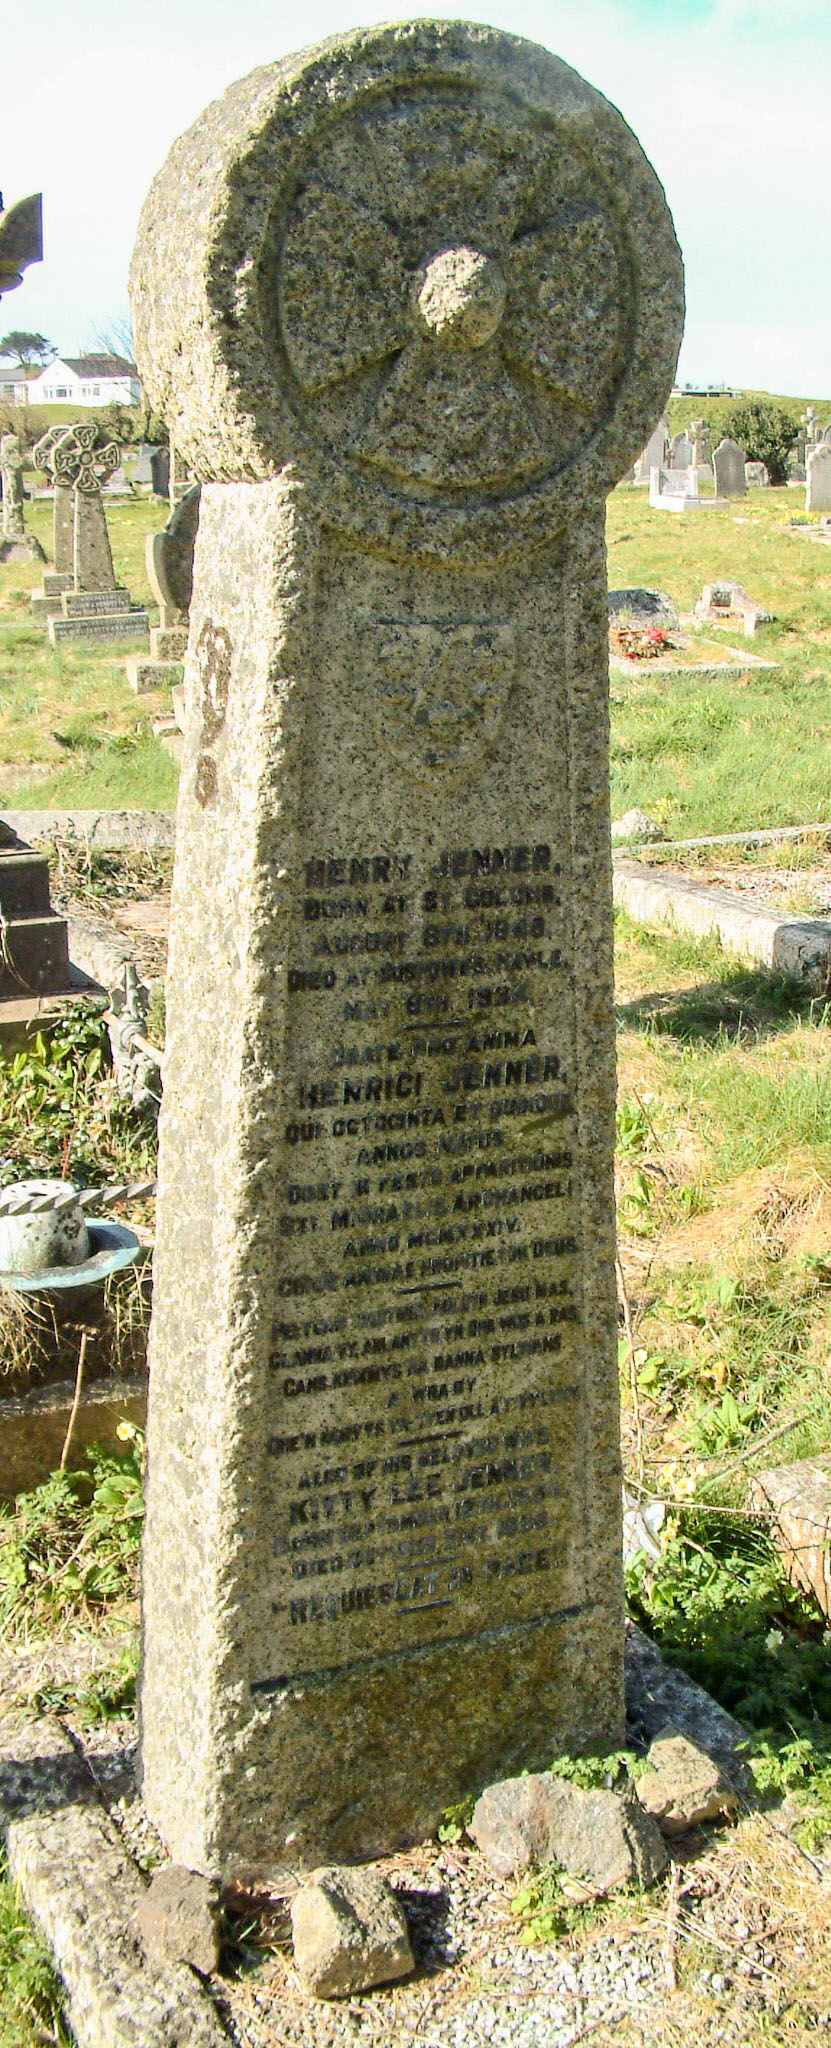 henry-jenner-memorial-founder-of-the-cornish-language-soc-c